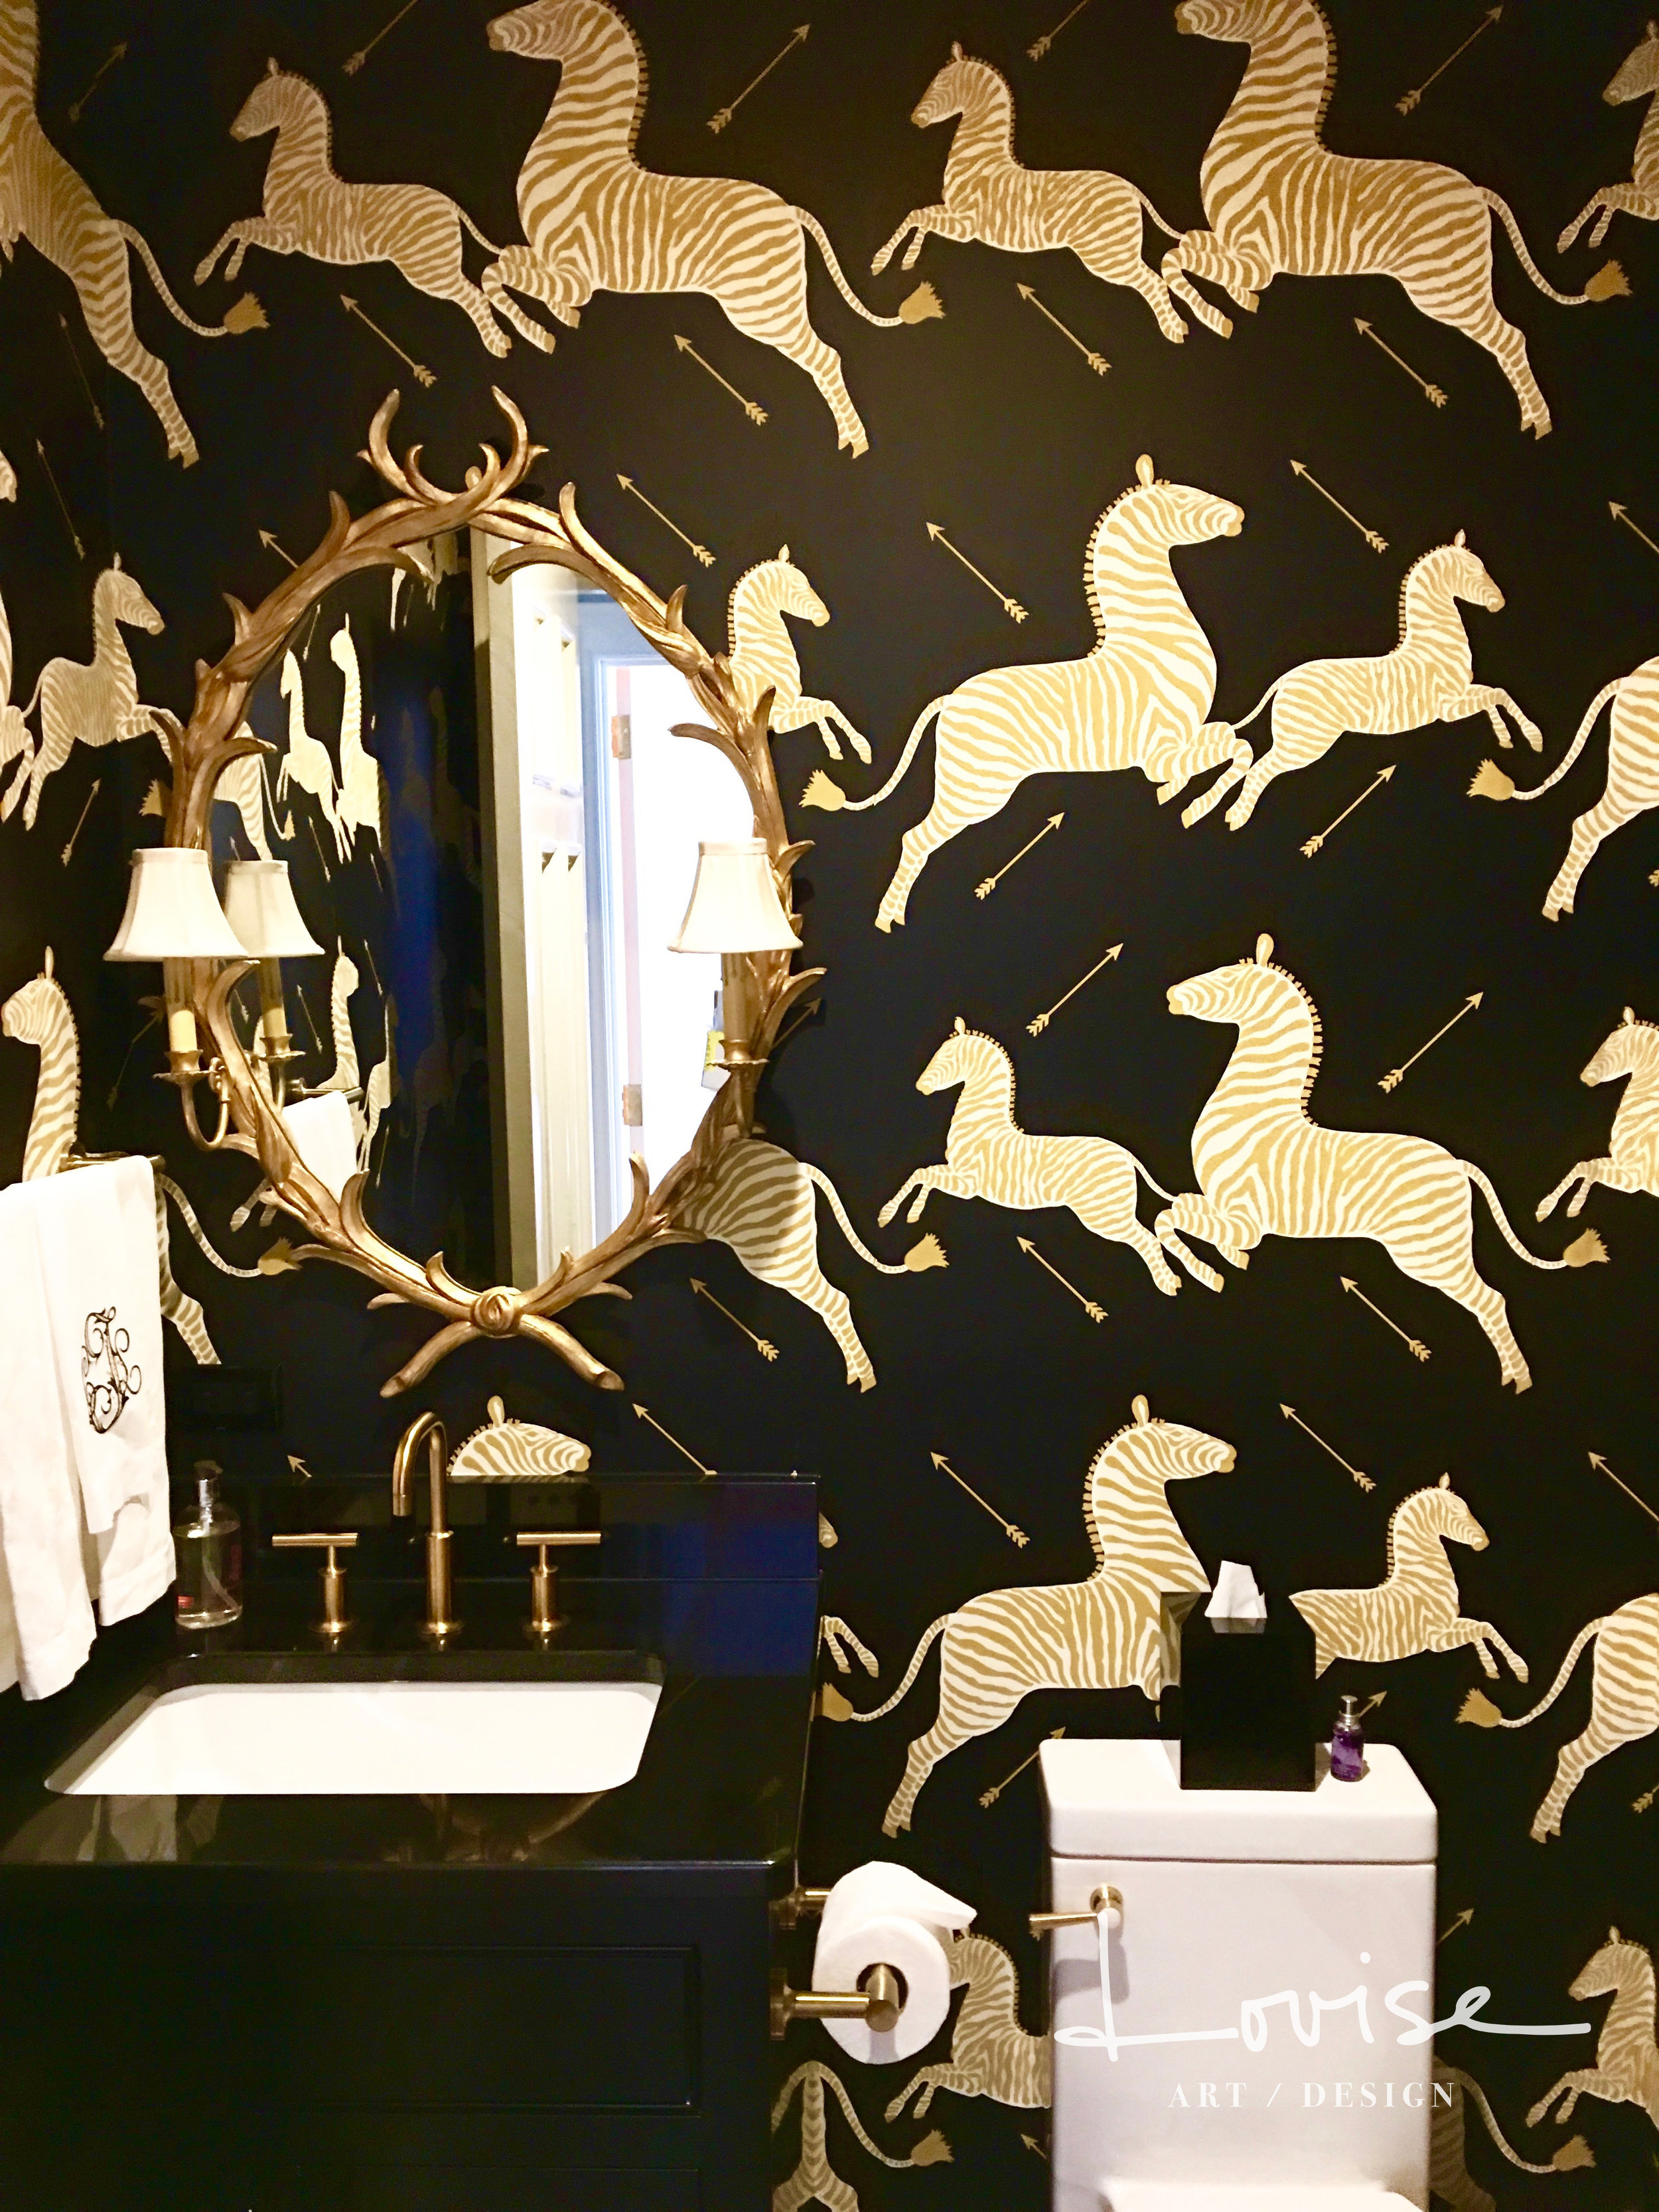 Powder room with black and gold zebra wallcovering